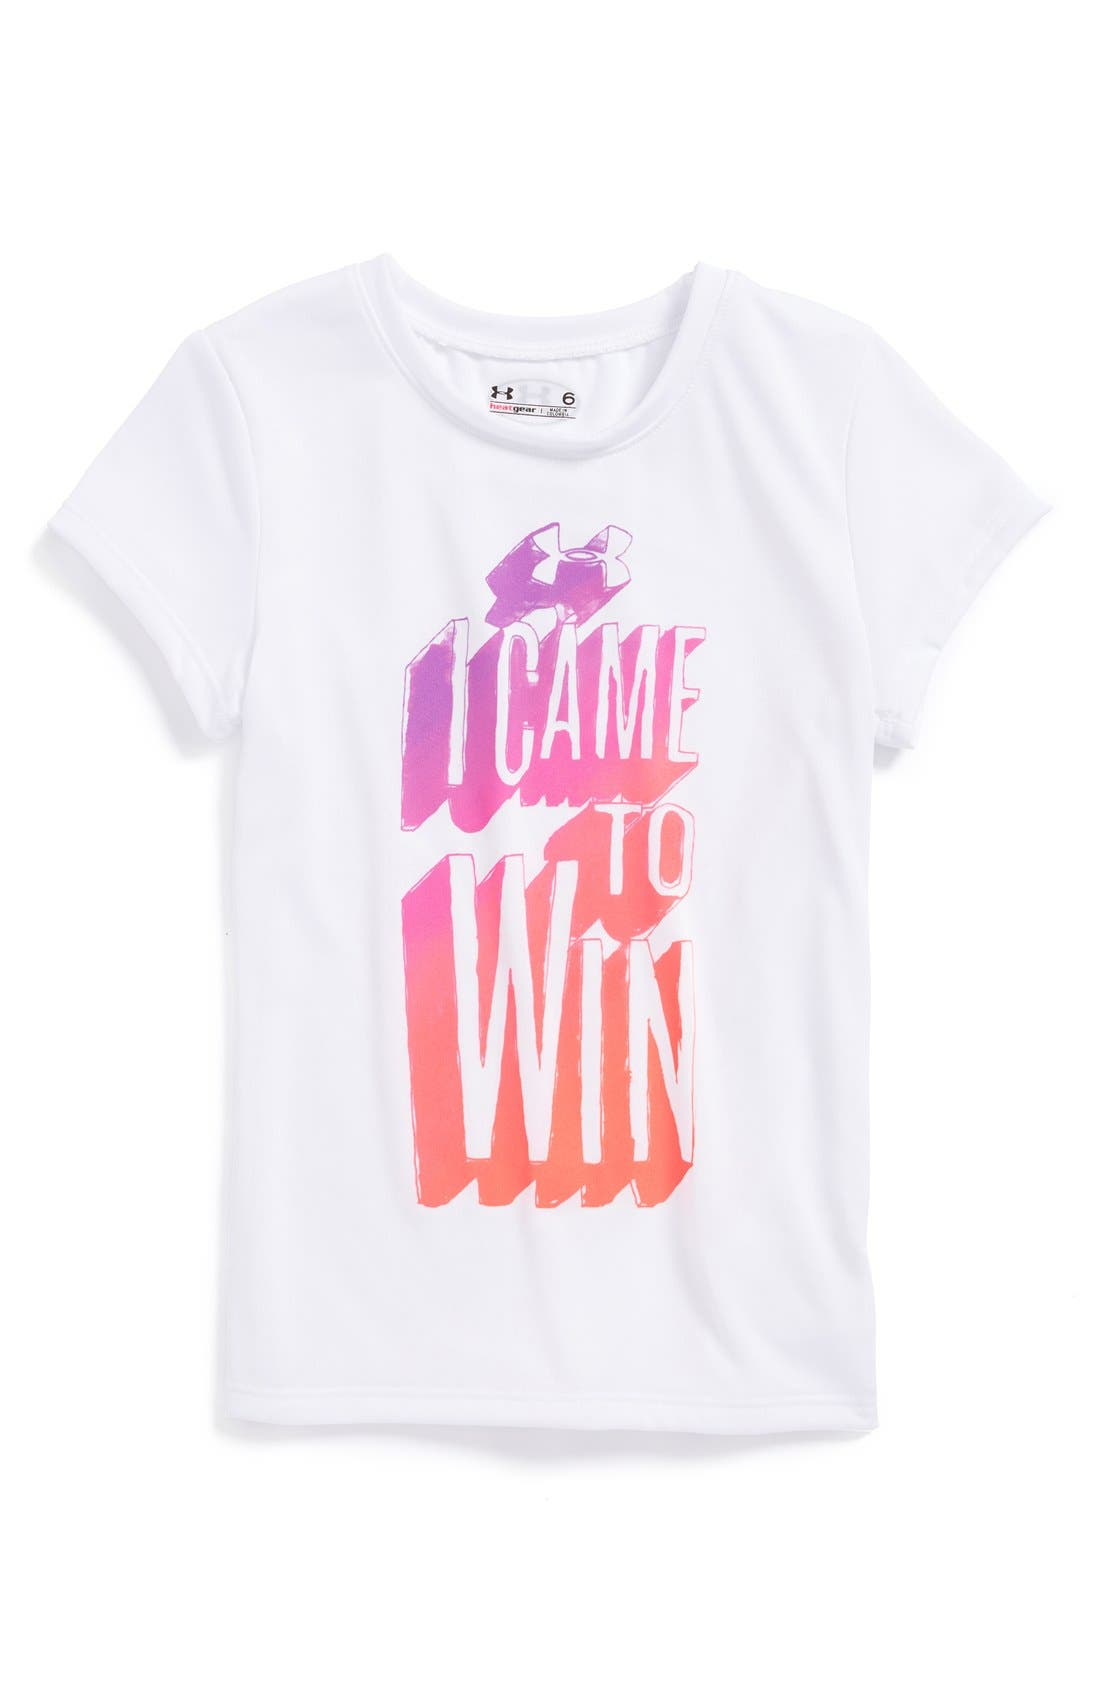 Alternate Image 1 Selected - Under Armour 'I Came to Win' Tee (Little Girls)